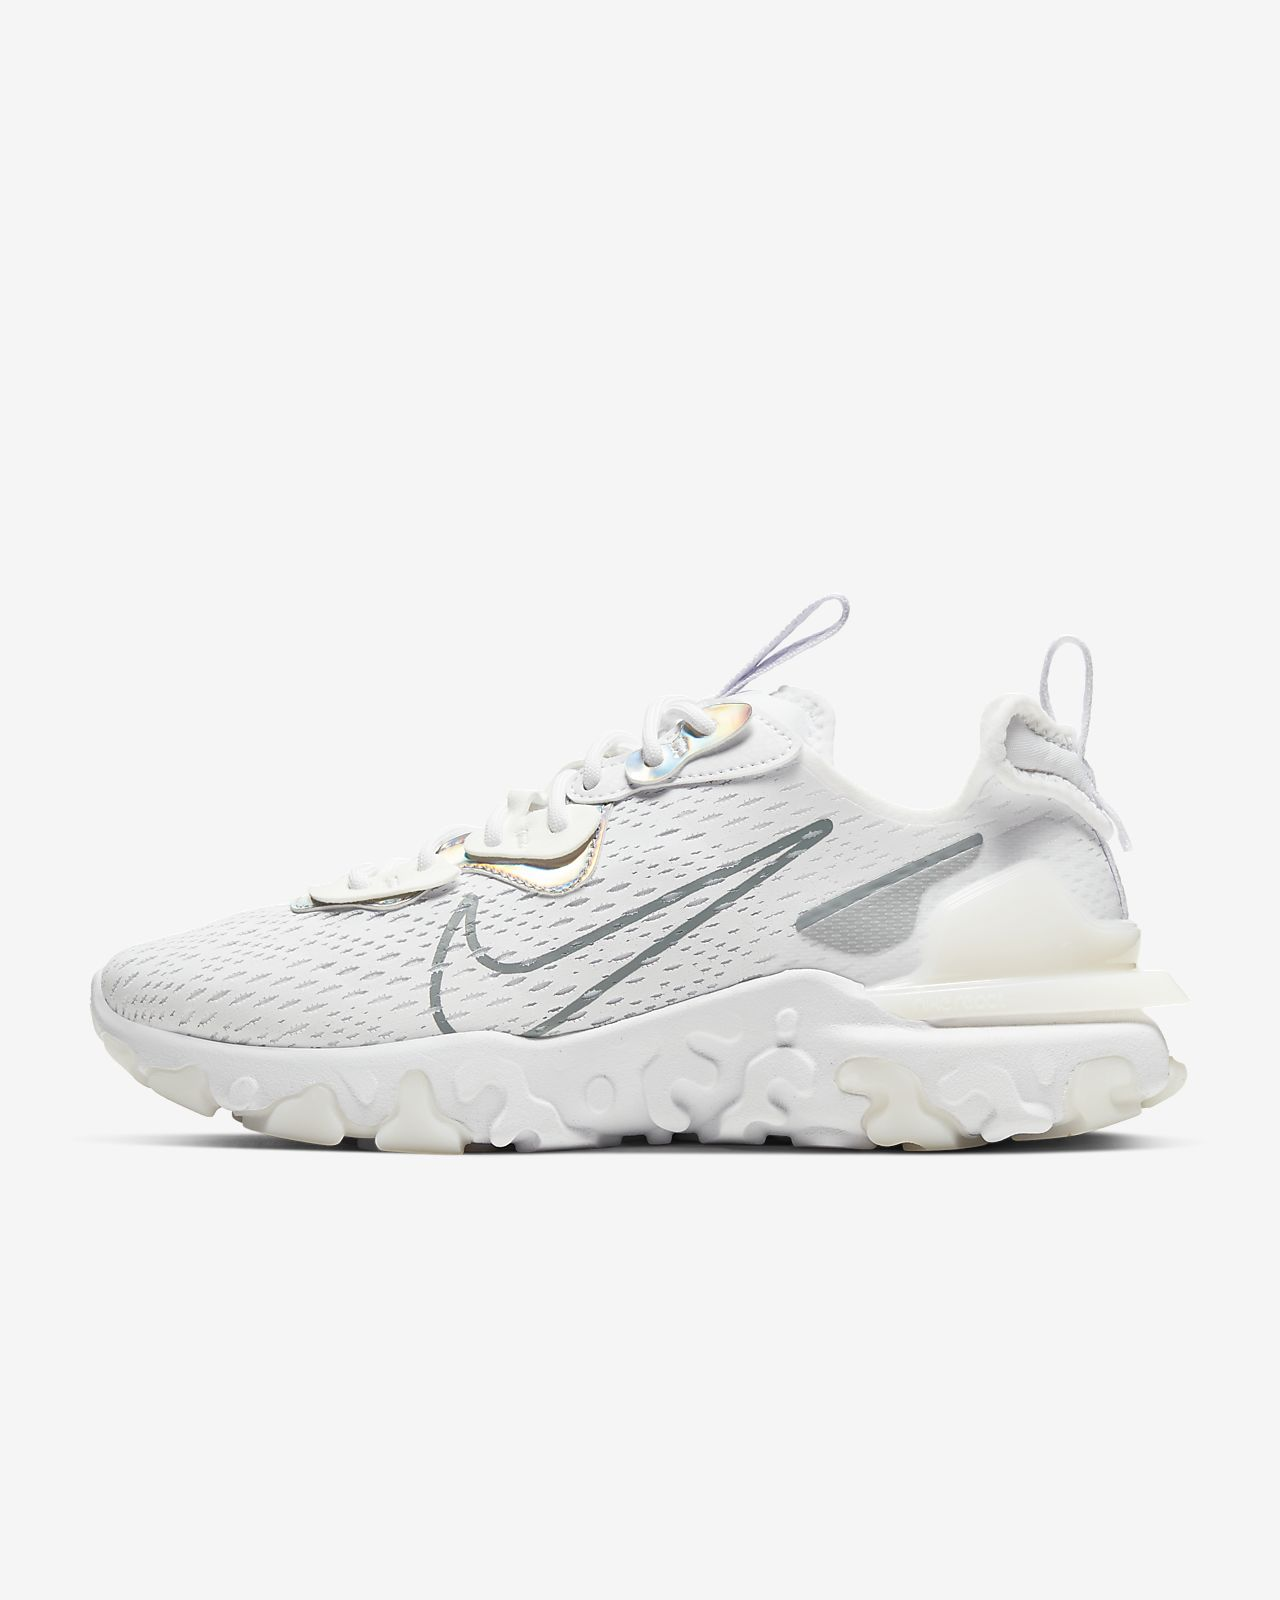 Chaussure Nike NSW React Vision Essential pour Femme